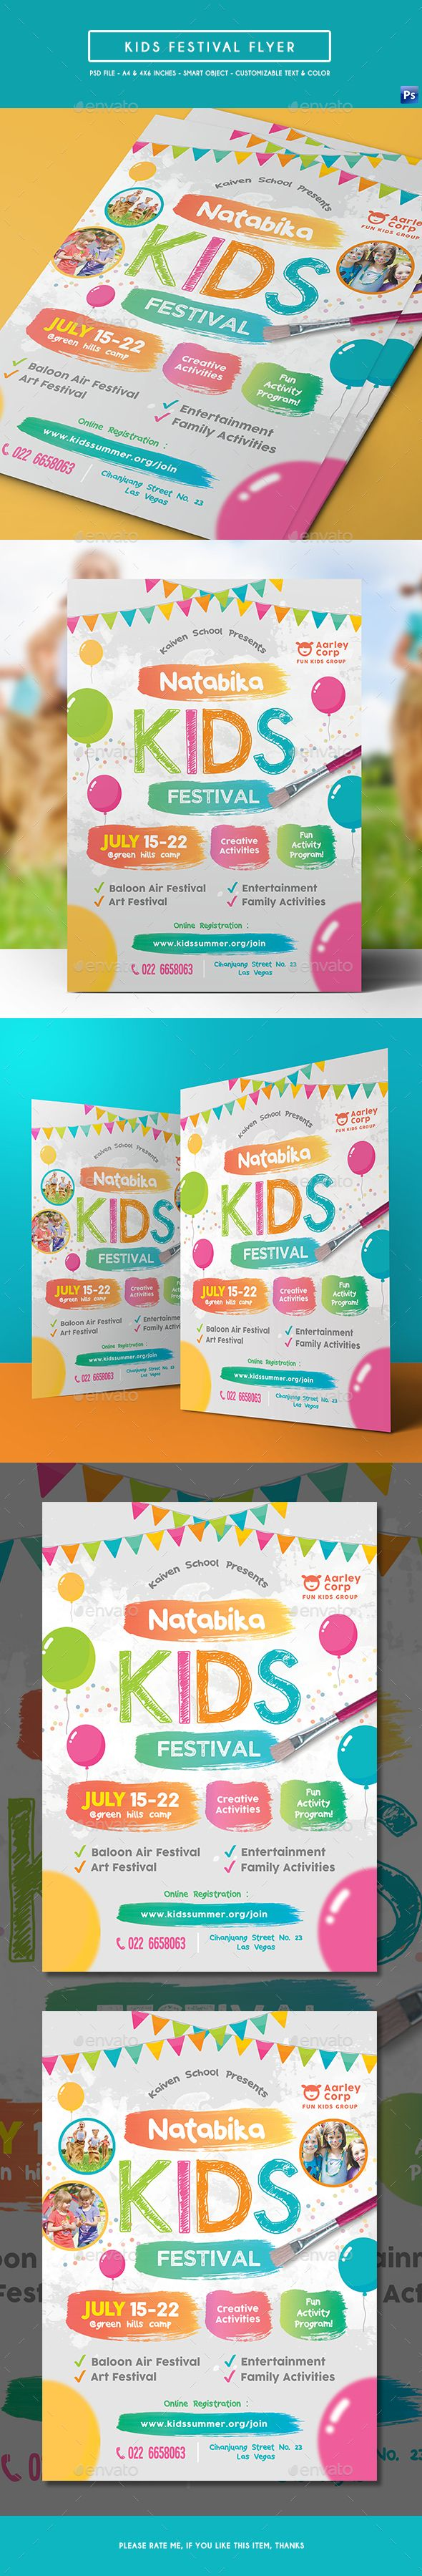 Kids Festival Flyer Design Template - Events Flyers Design Template PSD. Download here: https://graphicriver.net/item/kids-festival-flyer/18953464?ref=yinkira